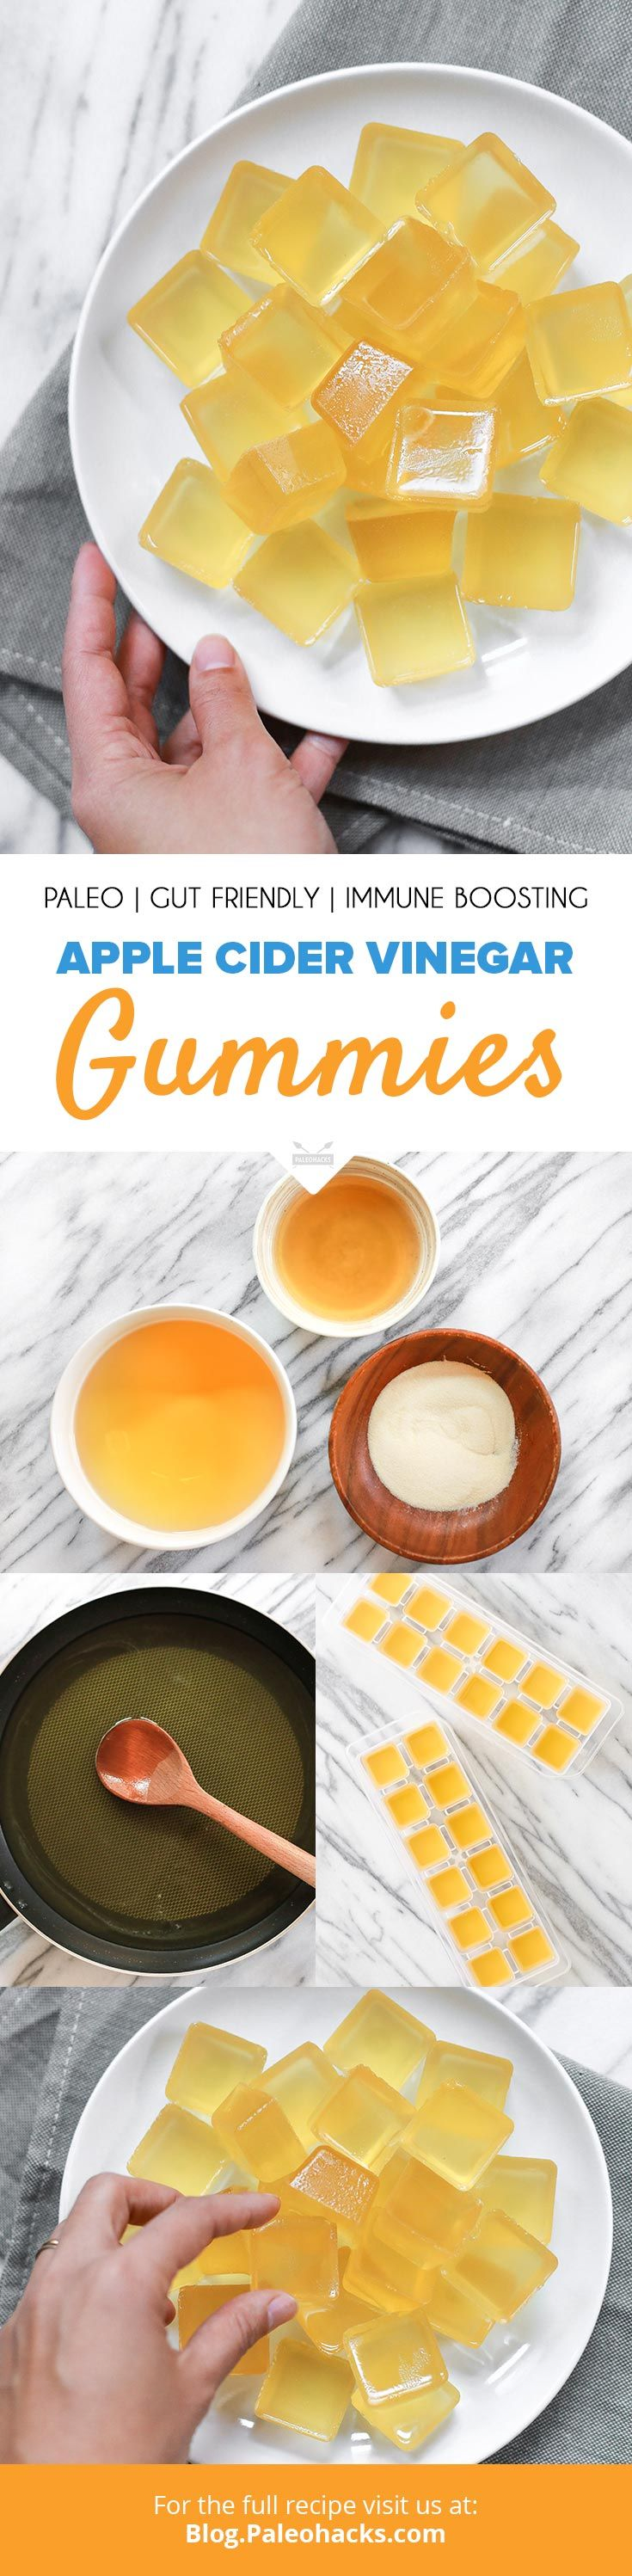 Get your daily dose of ACV in these bite-sized apple cider vinegar gummies! Get the full recipe here: http://paleo.co/ACVgummies